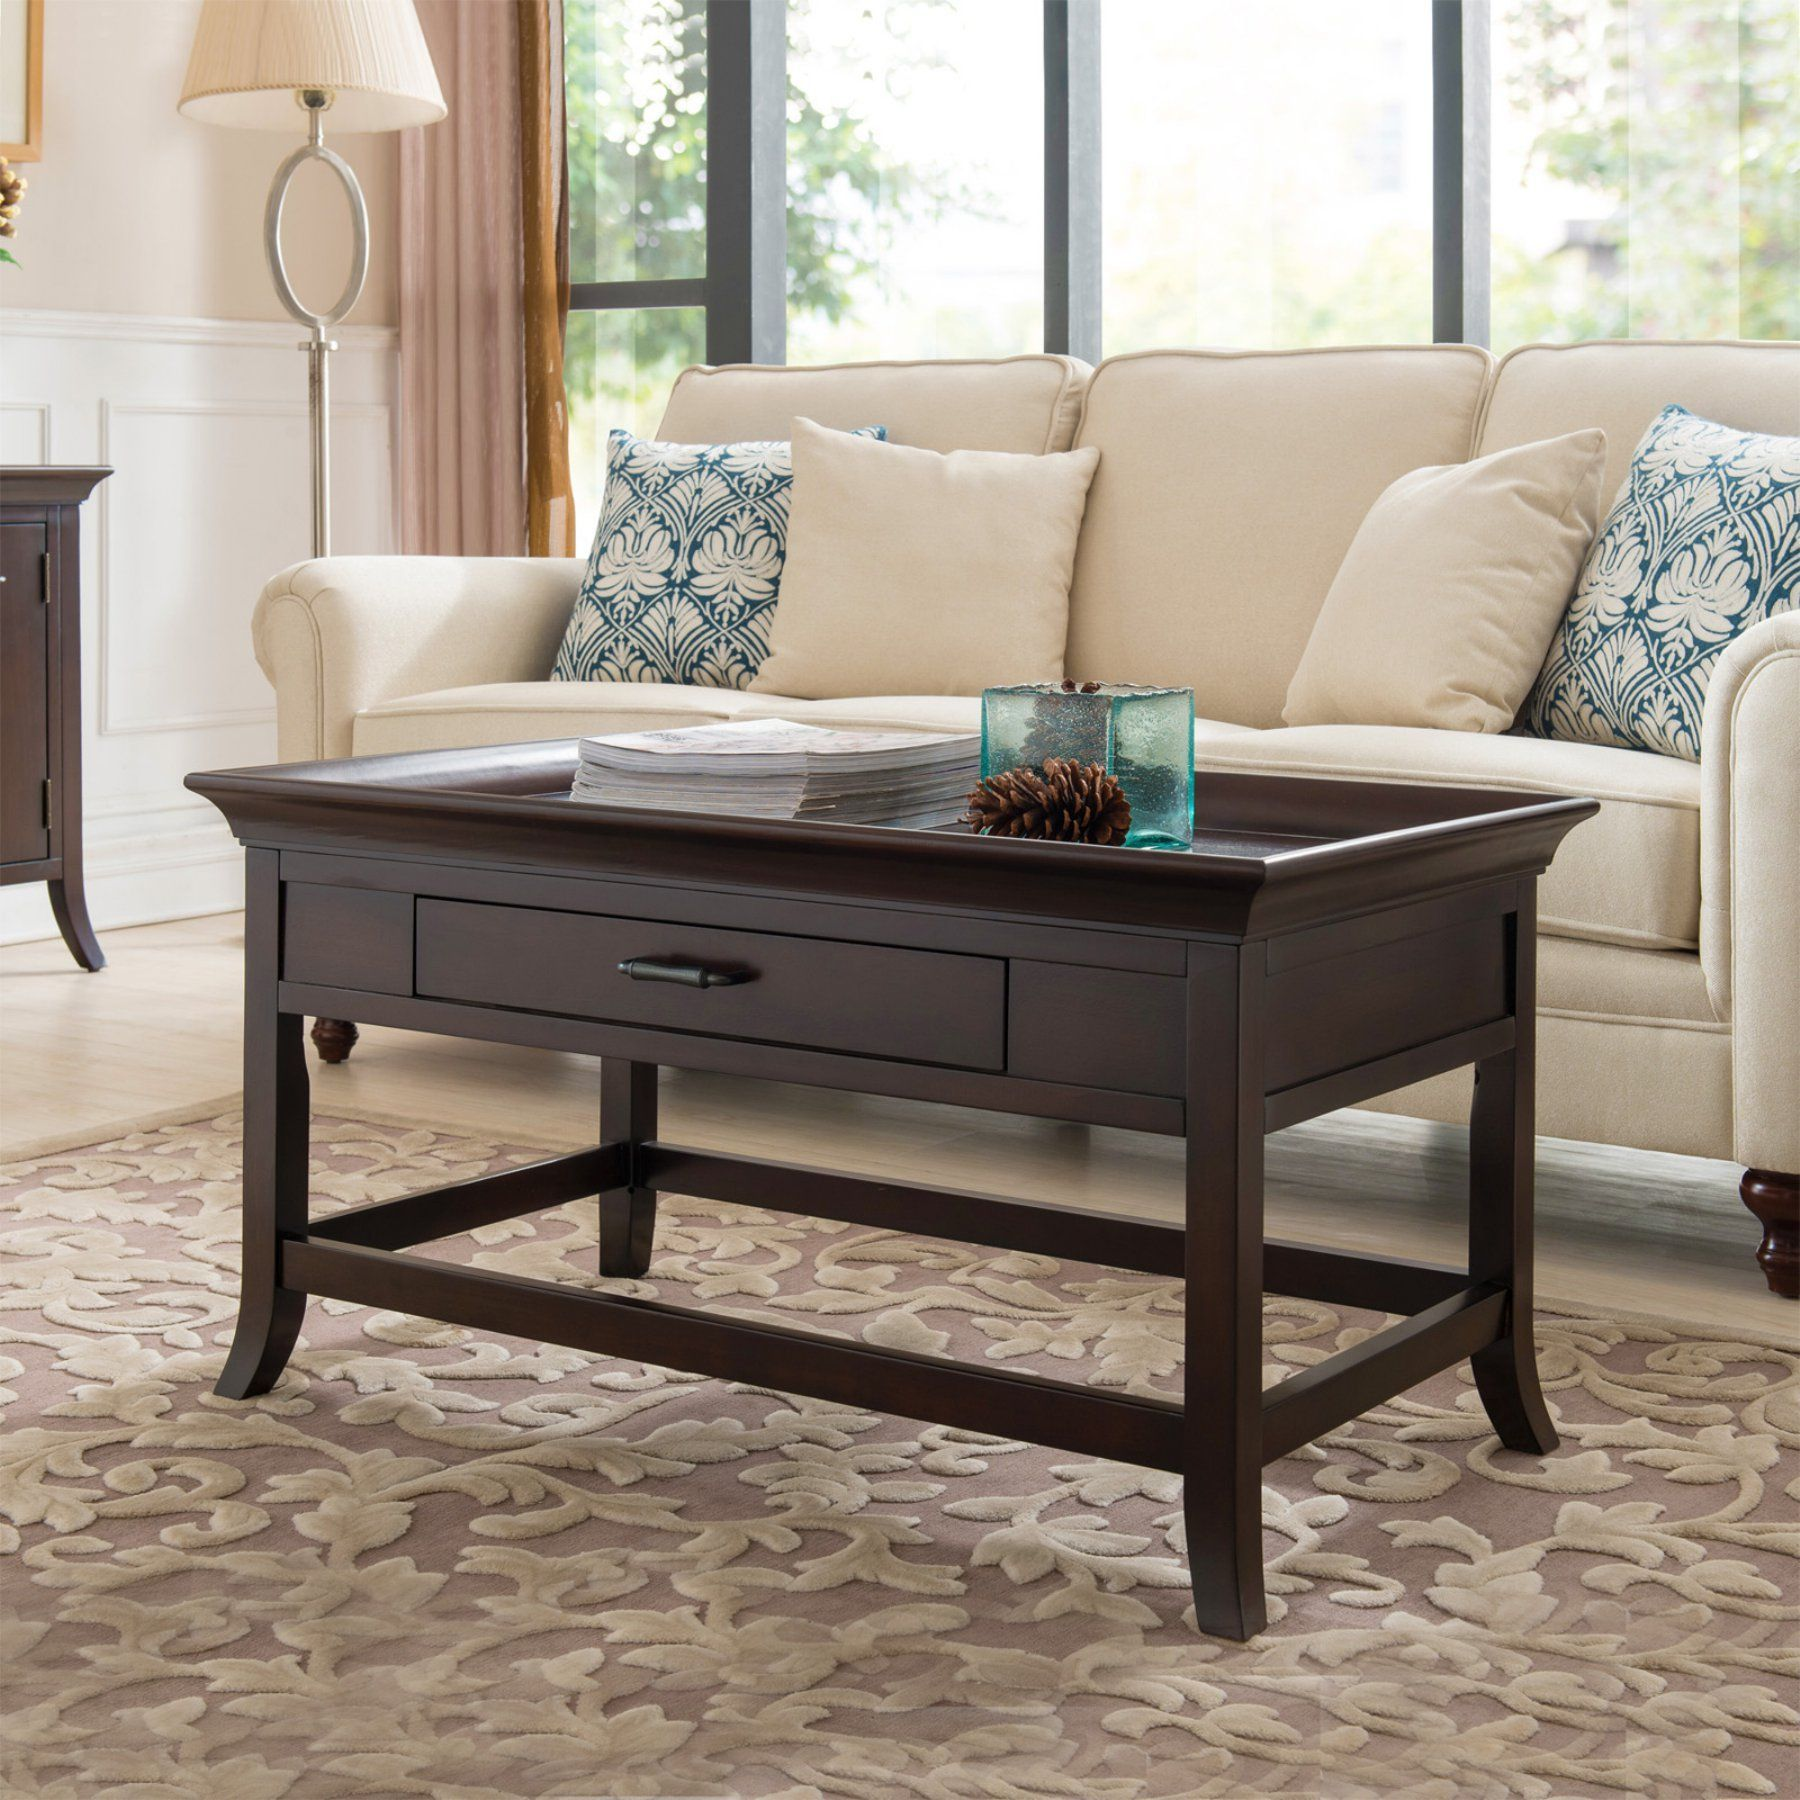 Magnificent Leick Furniture Tray Edge Coffee Table 10128 Products Forskolin Free Trial Chair Design Images Forskolin Free Trialorg